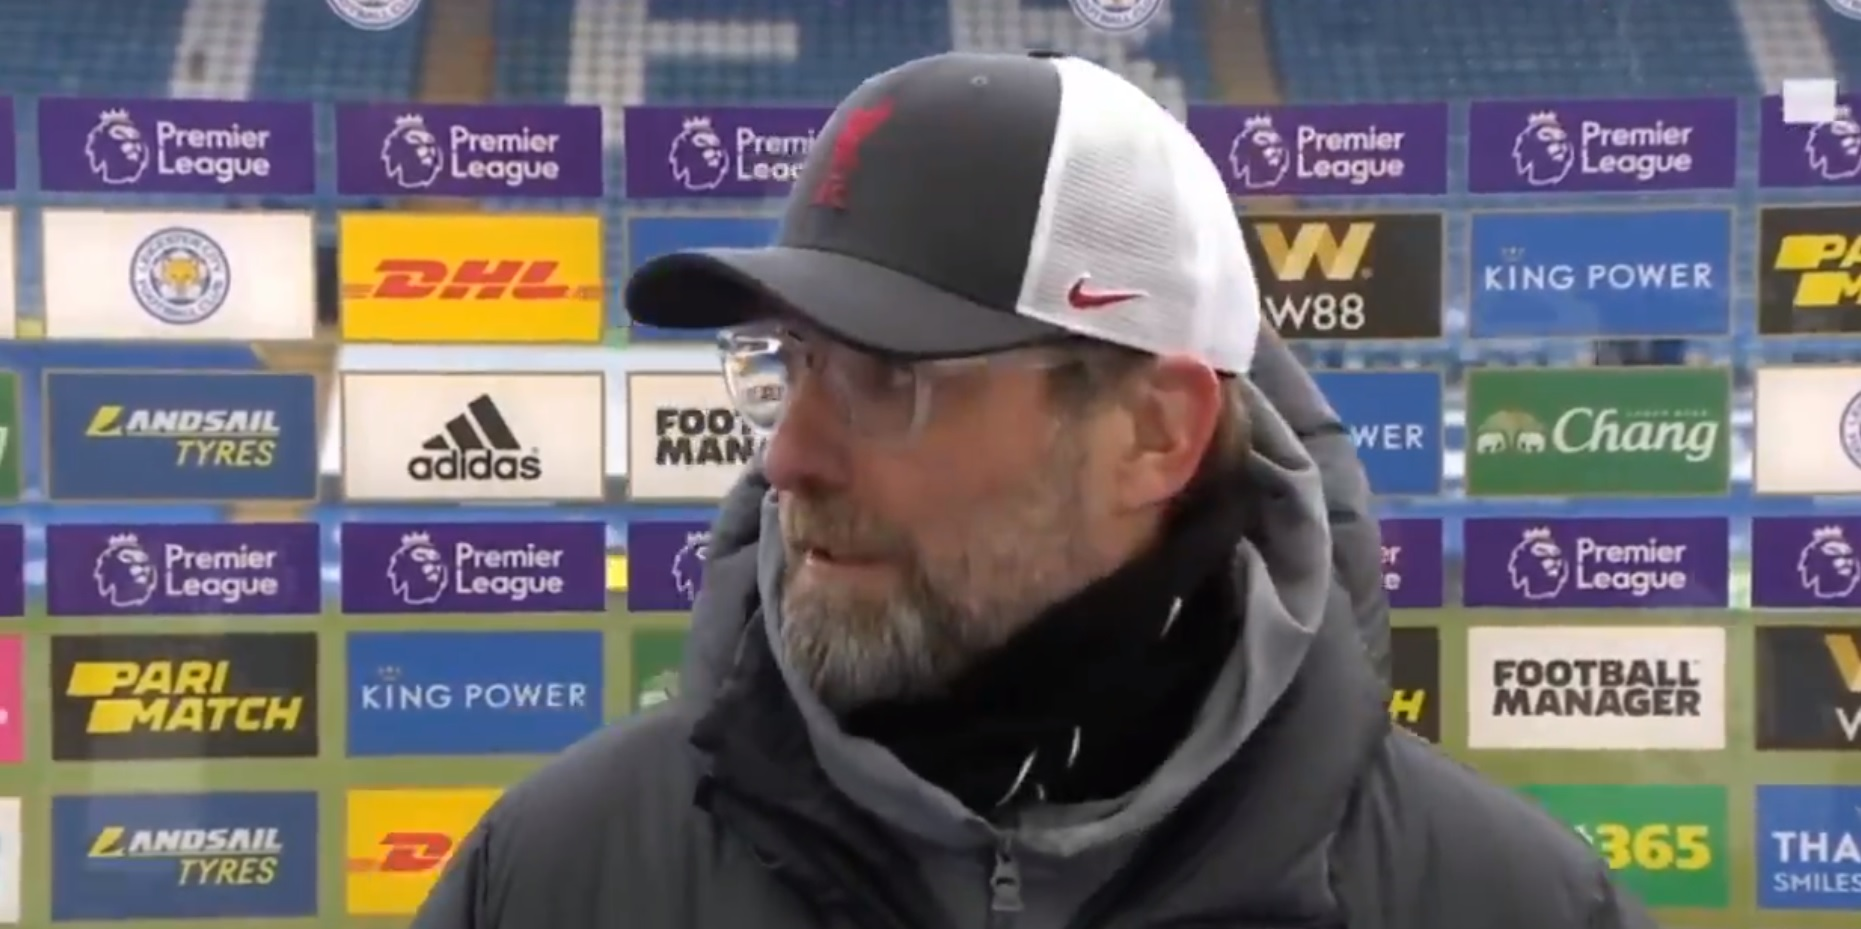 (Video) 'Looks like a clear offside' – Klopp disputes game-changing VAR call that awarded Leicester's equaliser